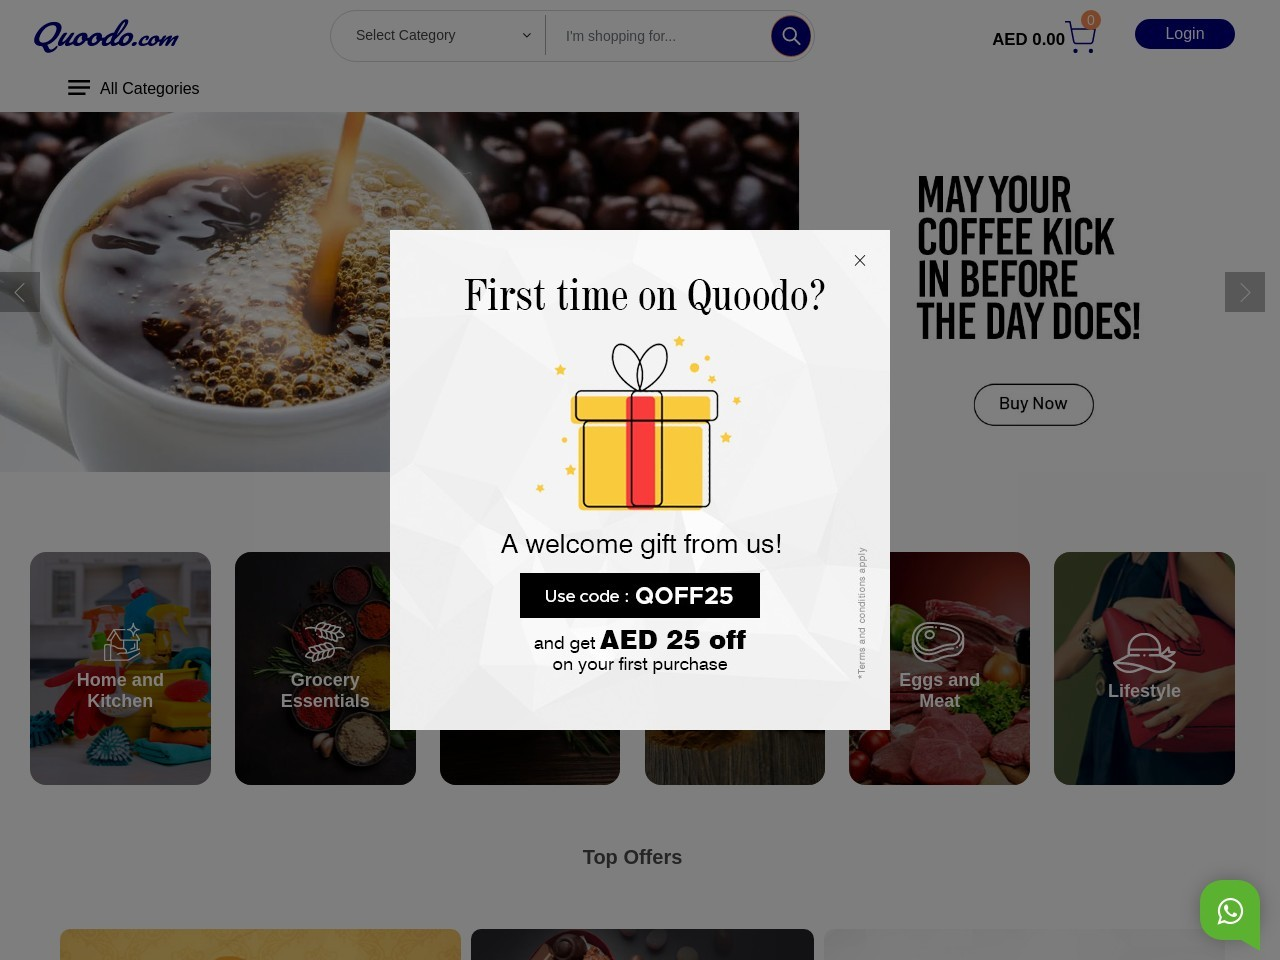 Best Holiday Packages Deals Online In UAE – Quoodo.com